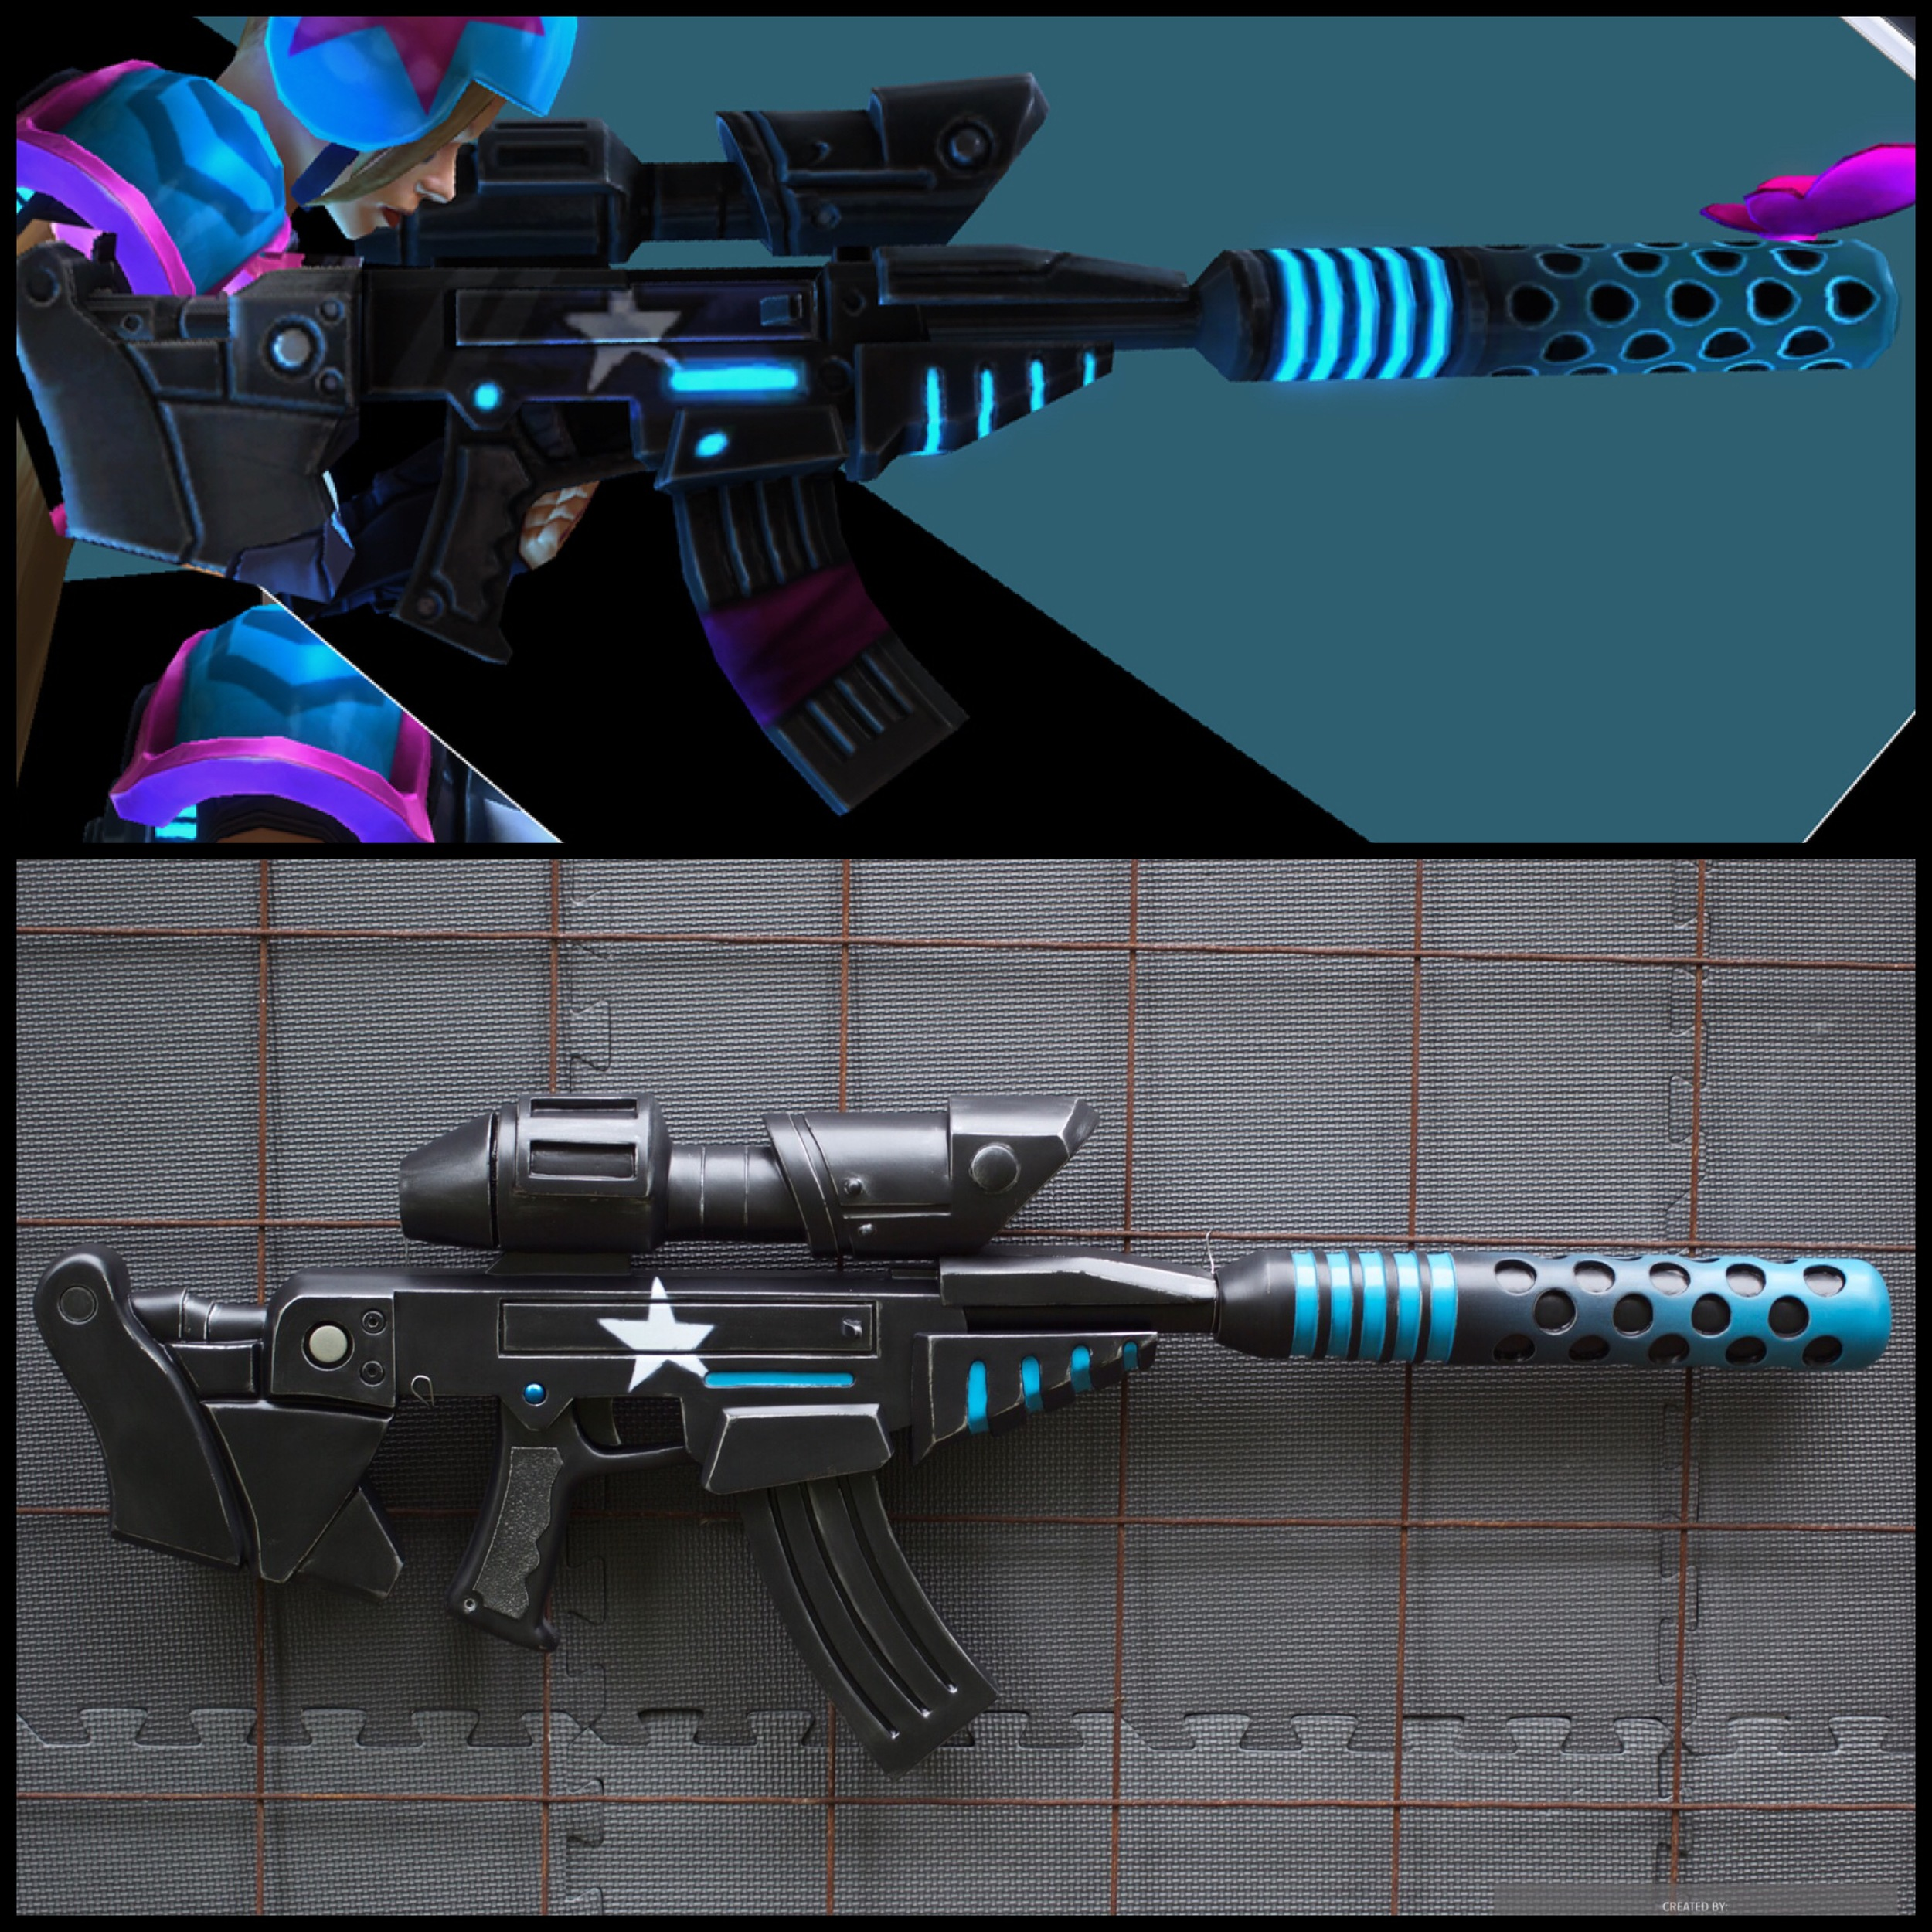 Top: The rifle as seen in game. Bottom: Hand-crafted replica.